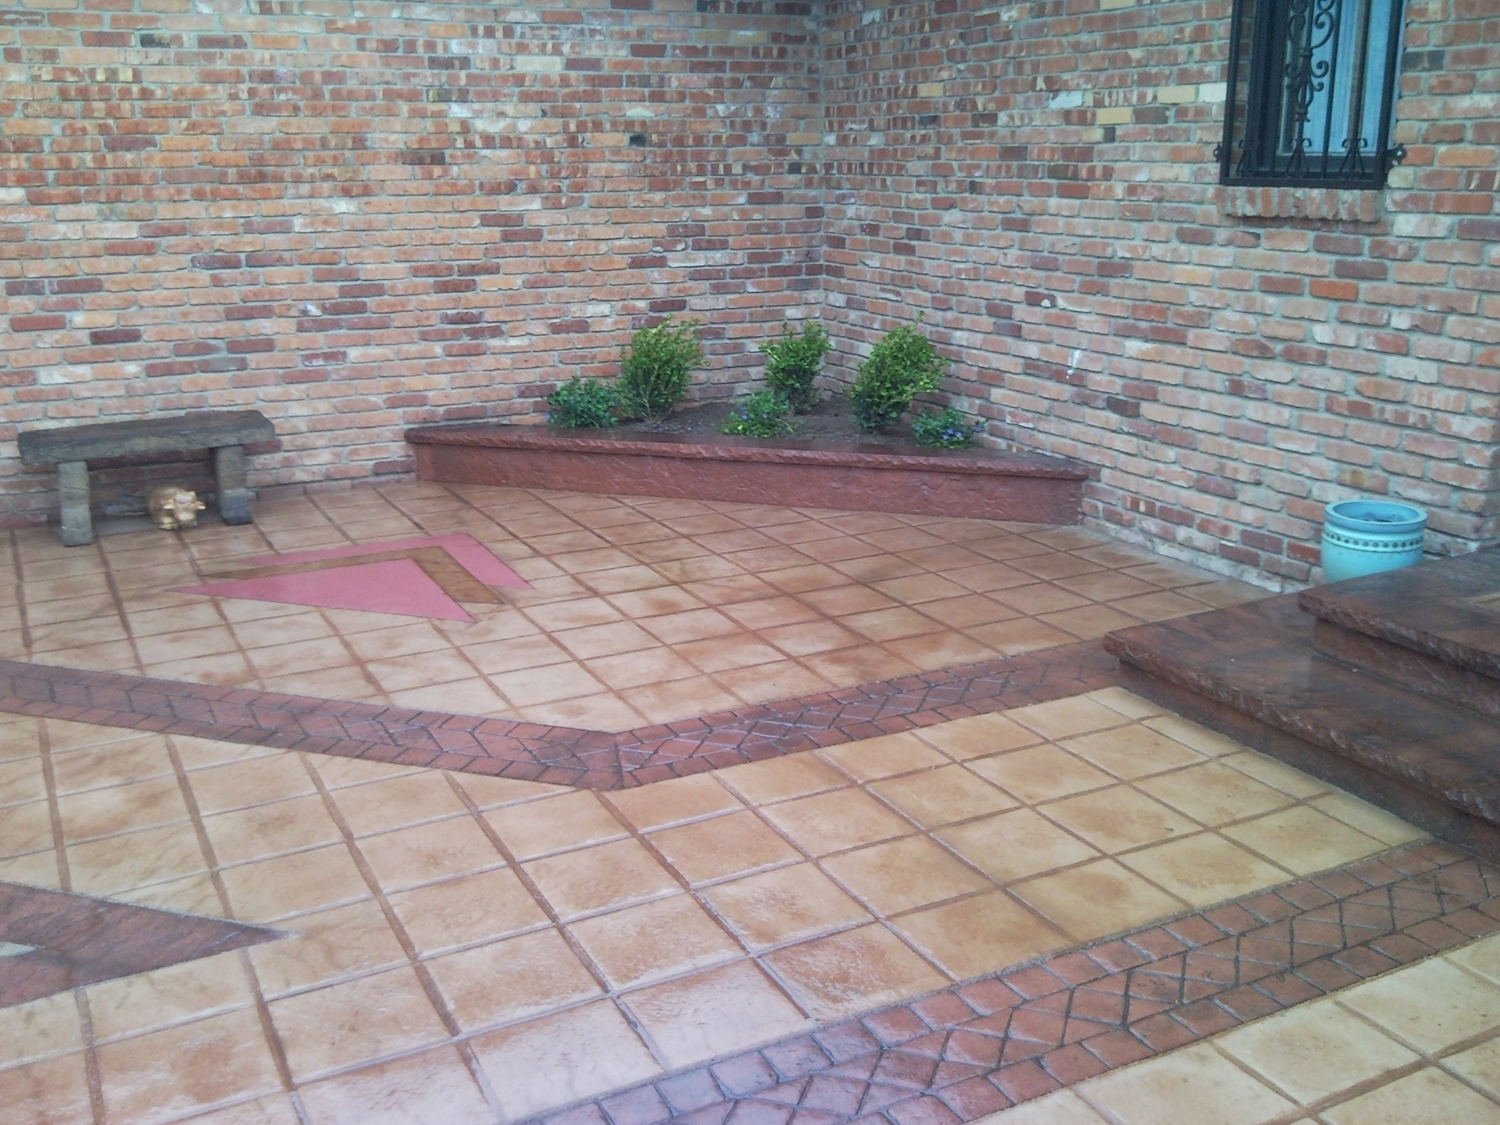 Brick red integral color, dark gray release, bluestone texture Santa Fe buff color, terra cotta release, mexican tile texture Gem Seal Freestyle stain Acid Stain